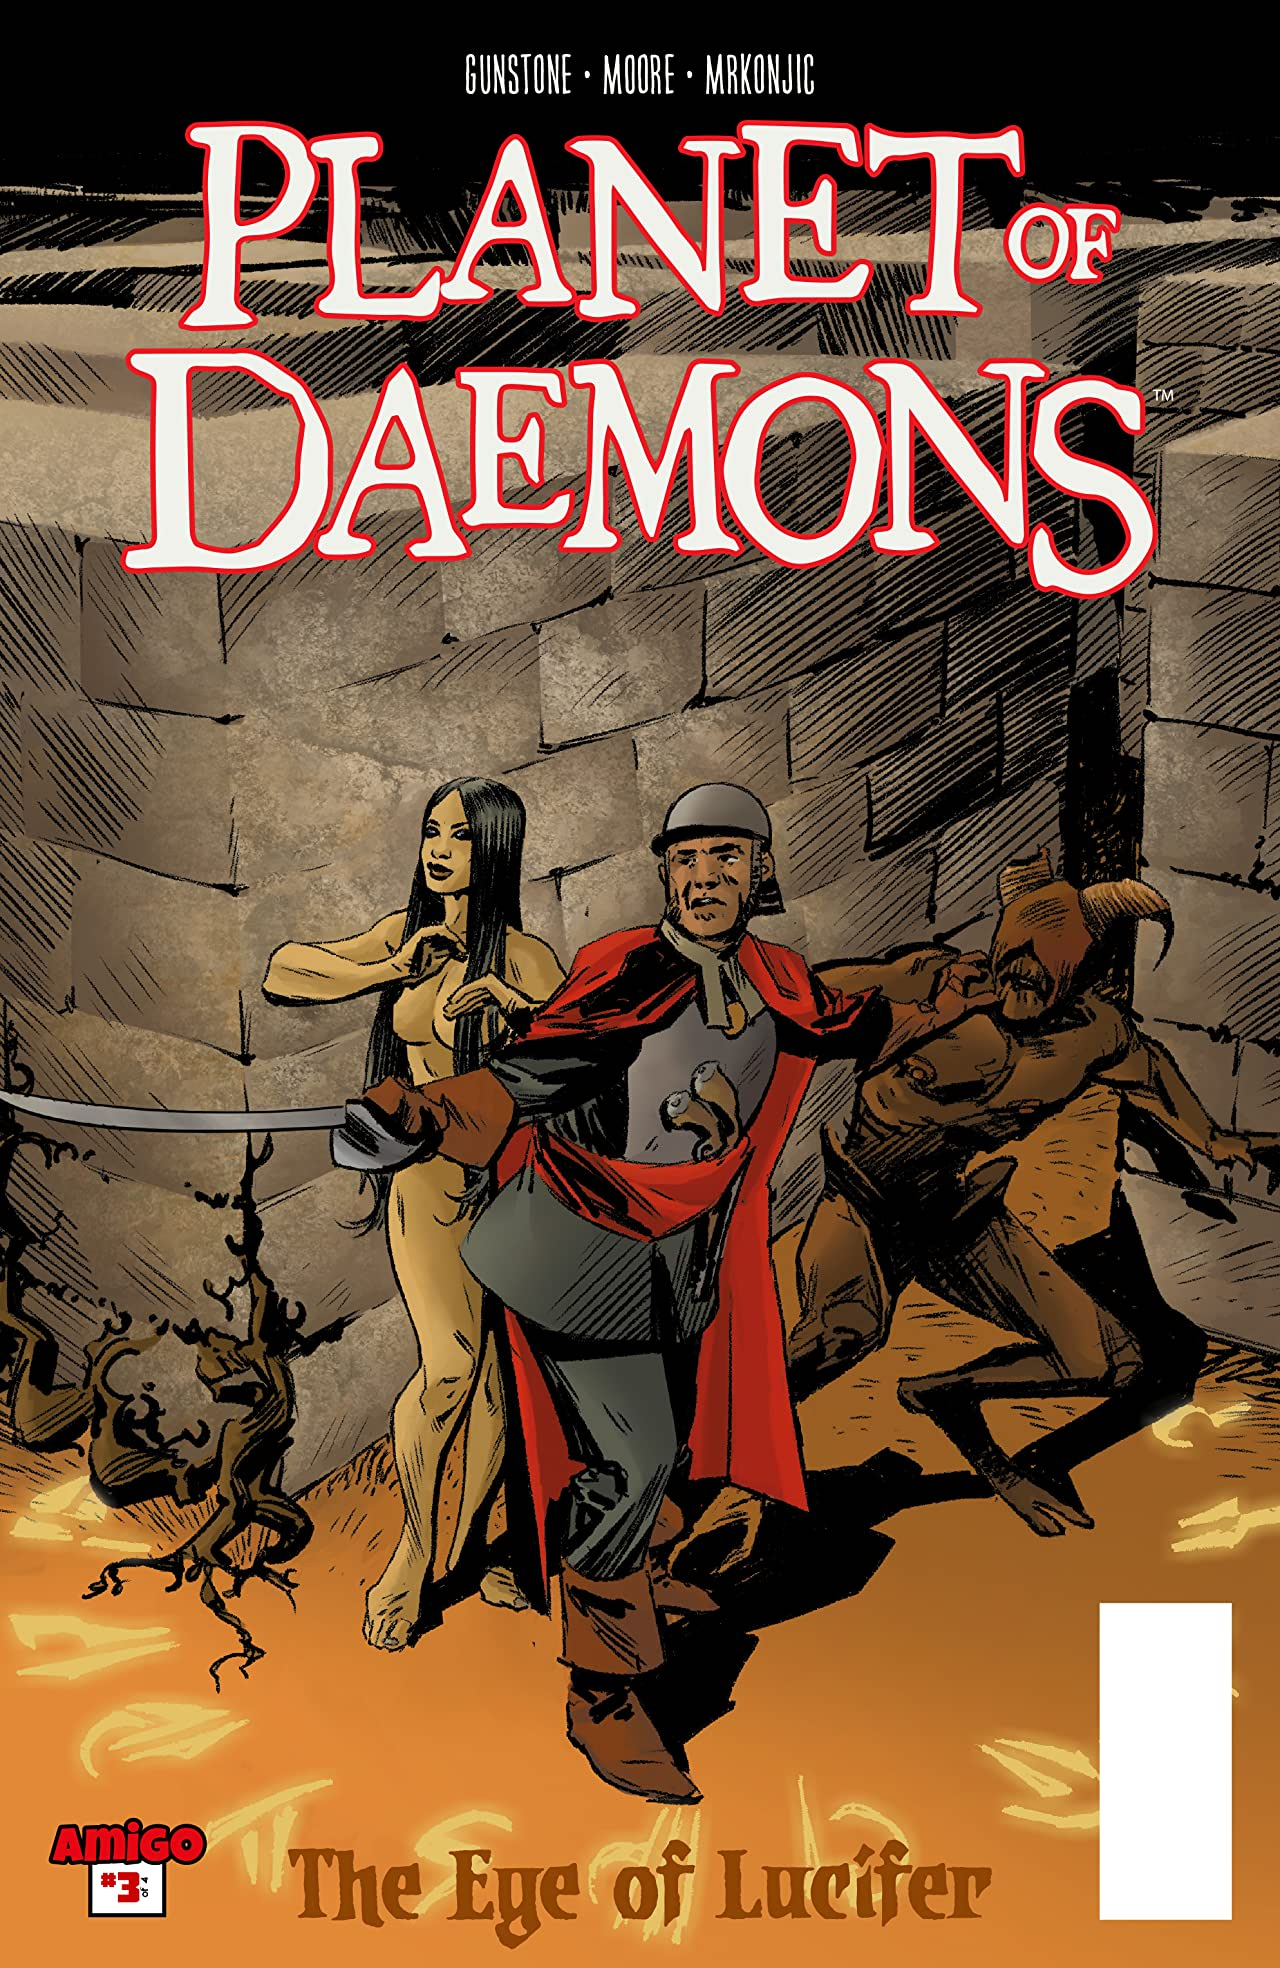 Planet of Daemons #3